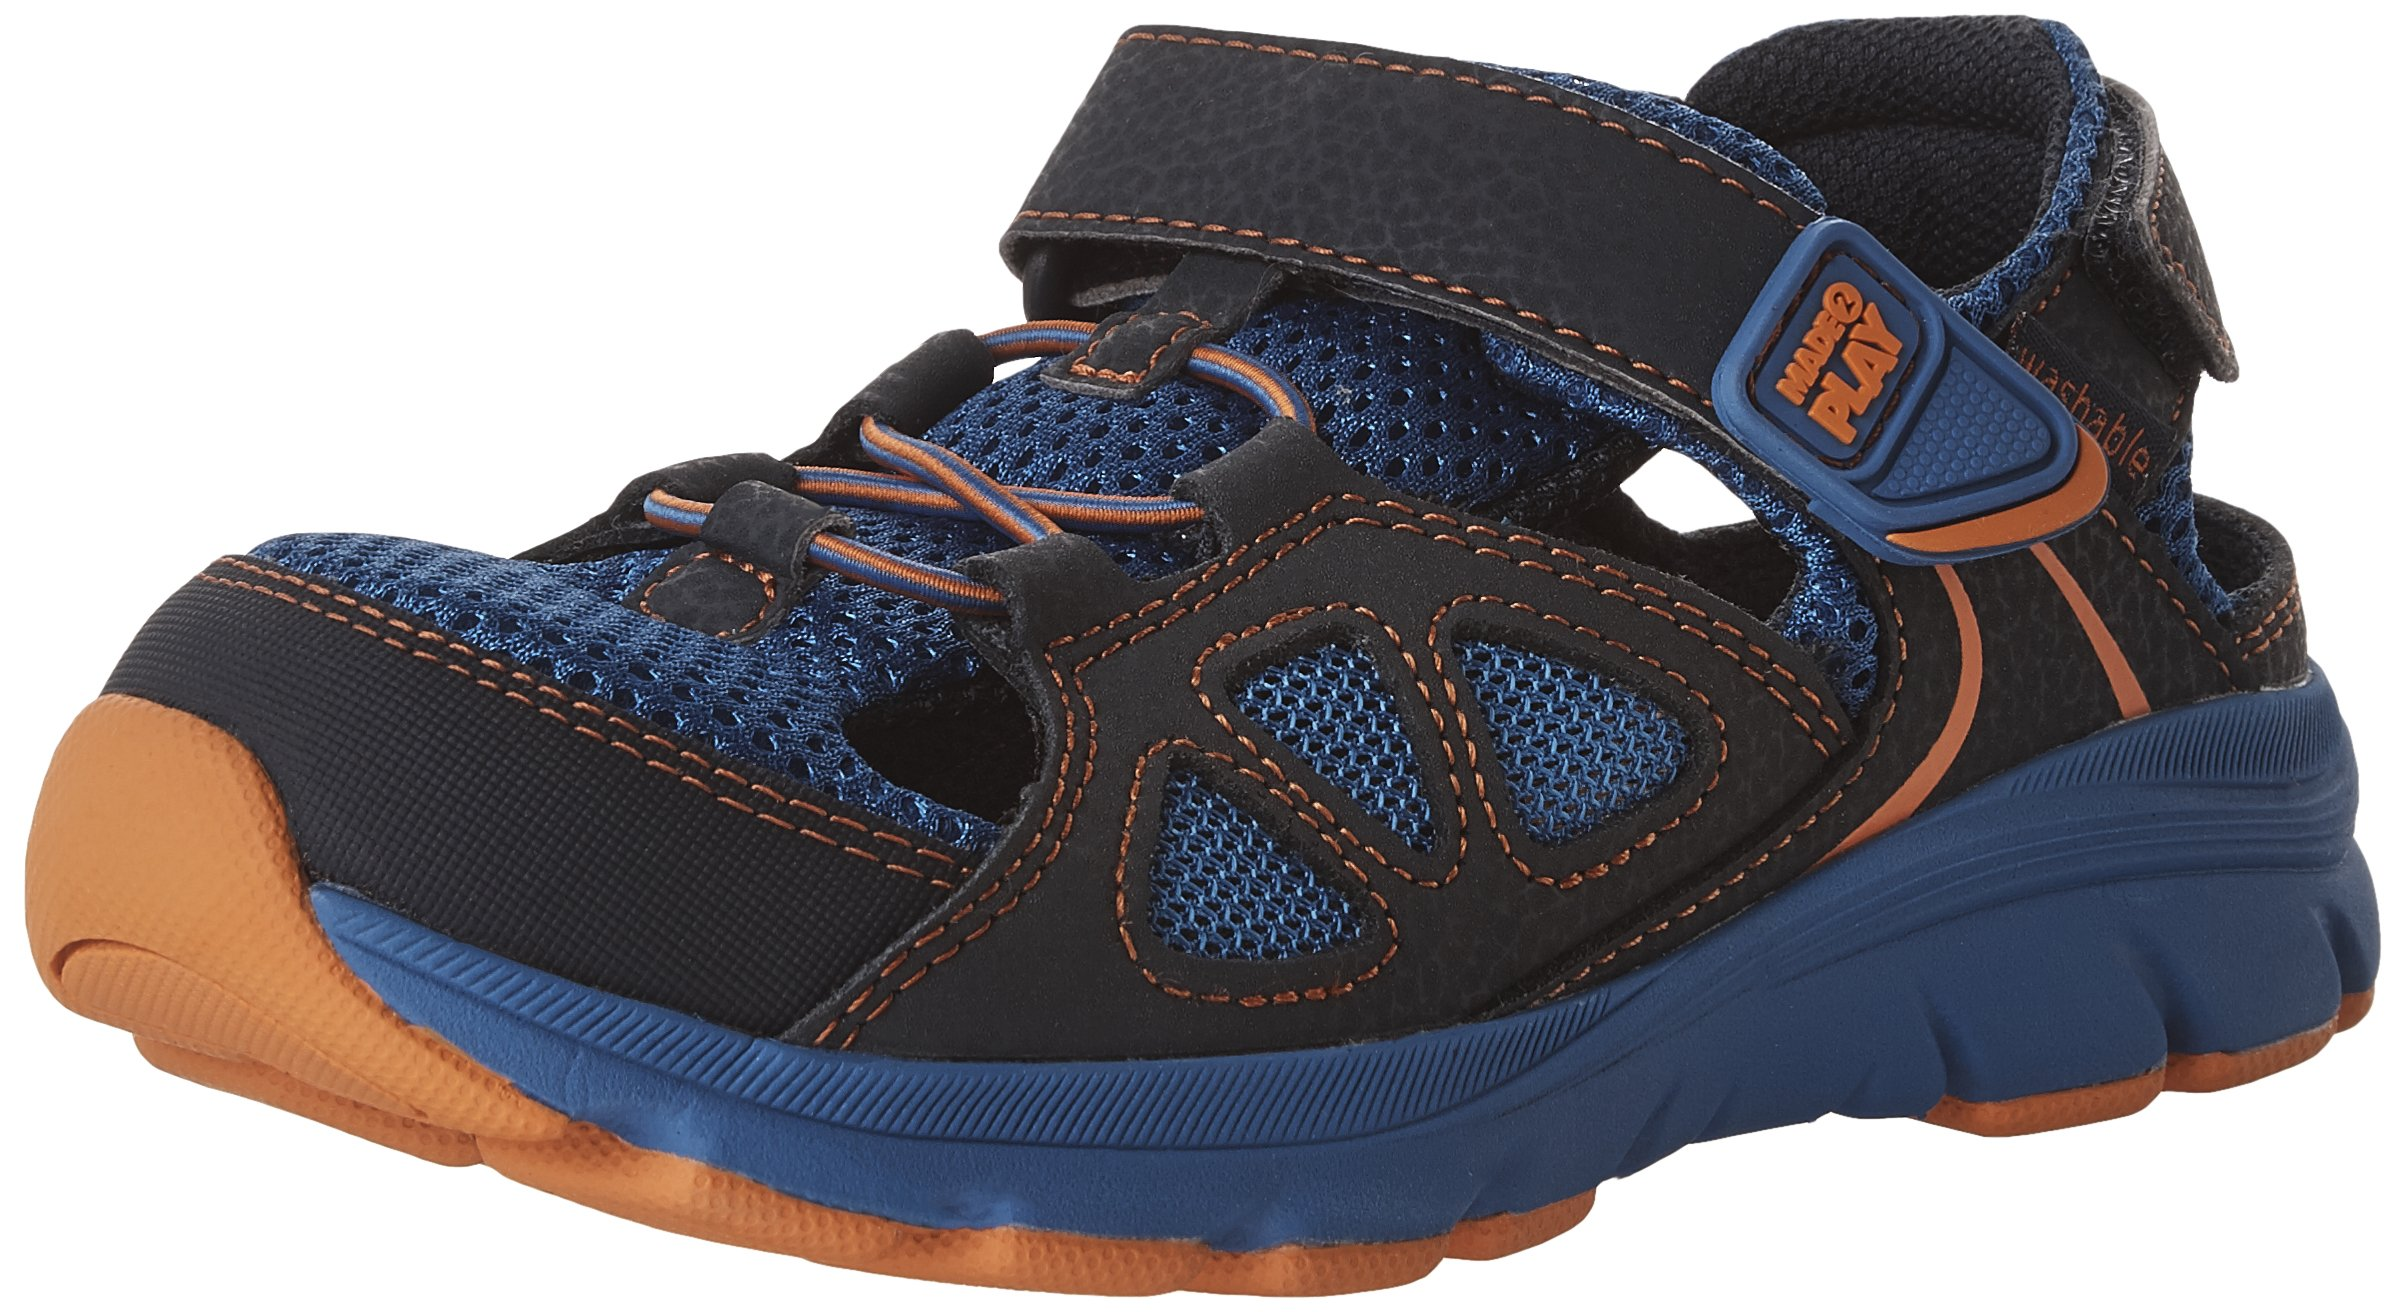 Stride Rite Made 2 Play Scout Water Shoe, Navy Royal, 10.5 M US Little Kid